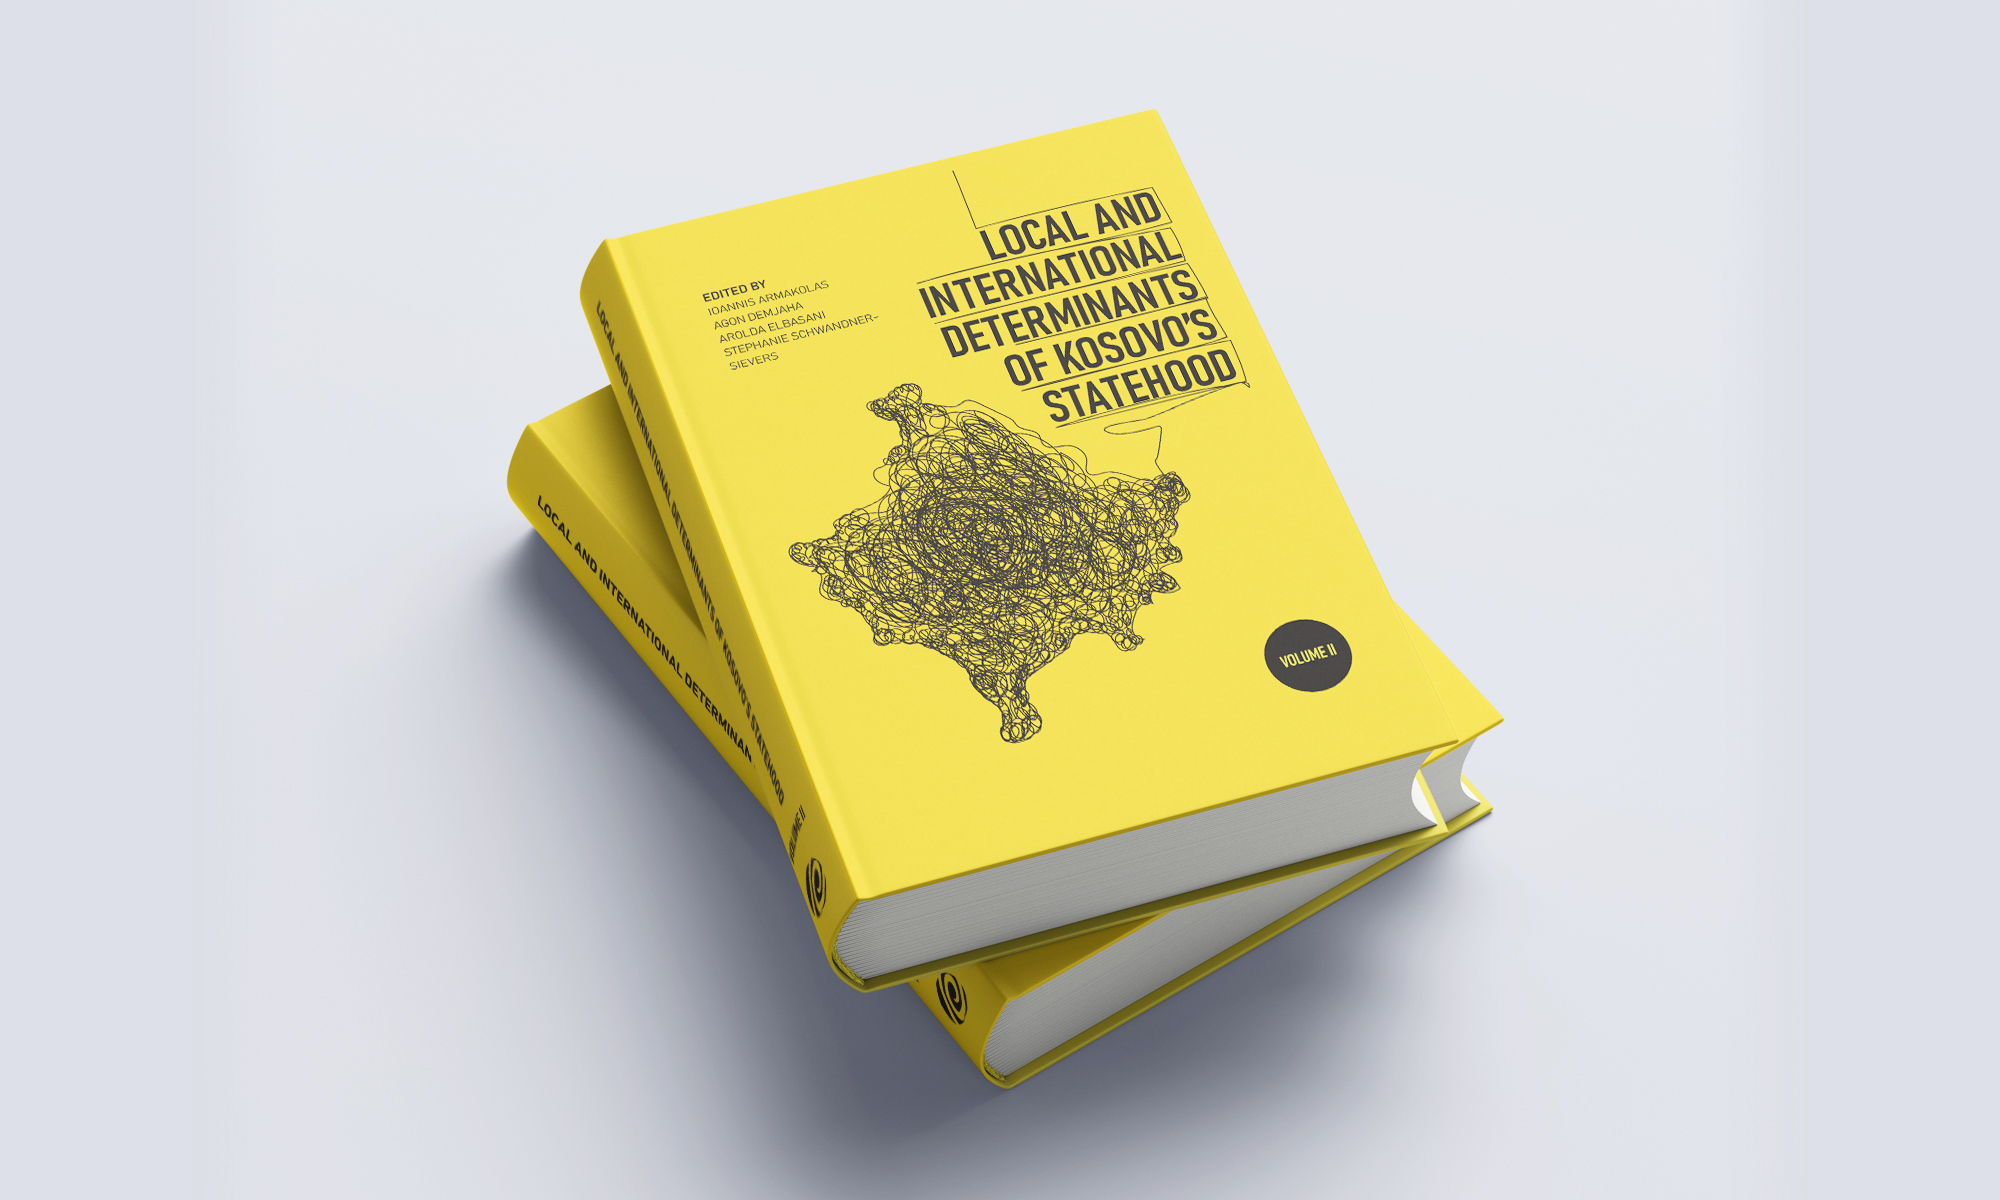 Publikimi i ri: Local and international determinants of Kosovo's statehood– Vëllimi II